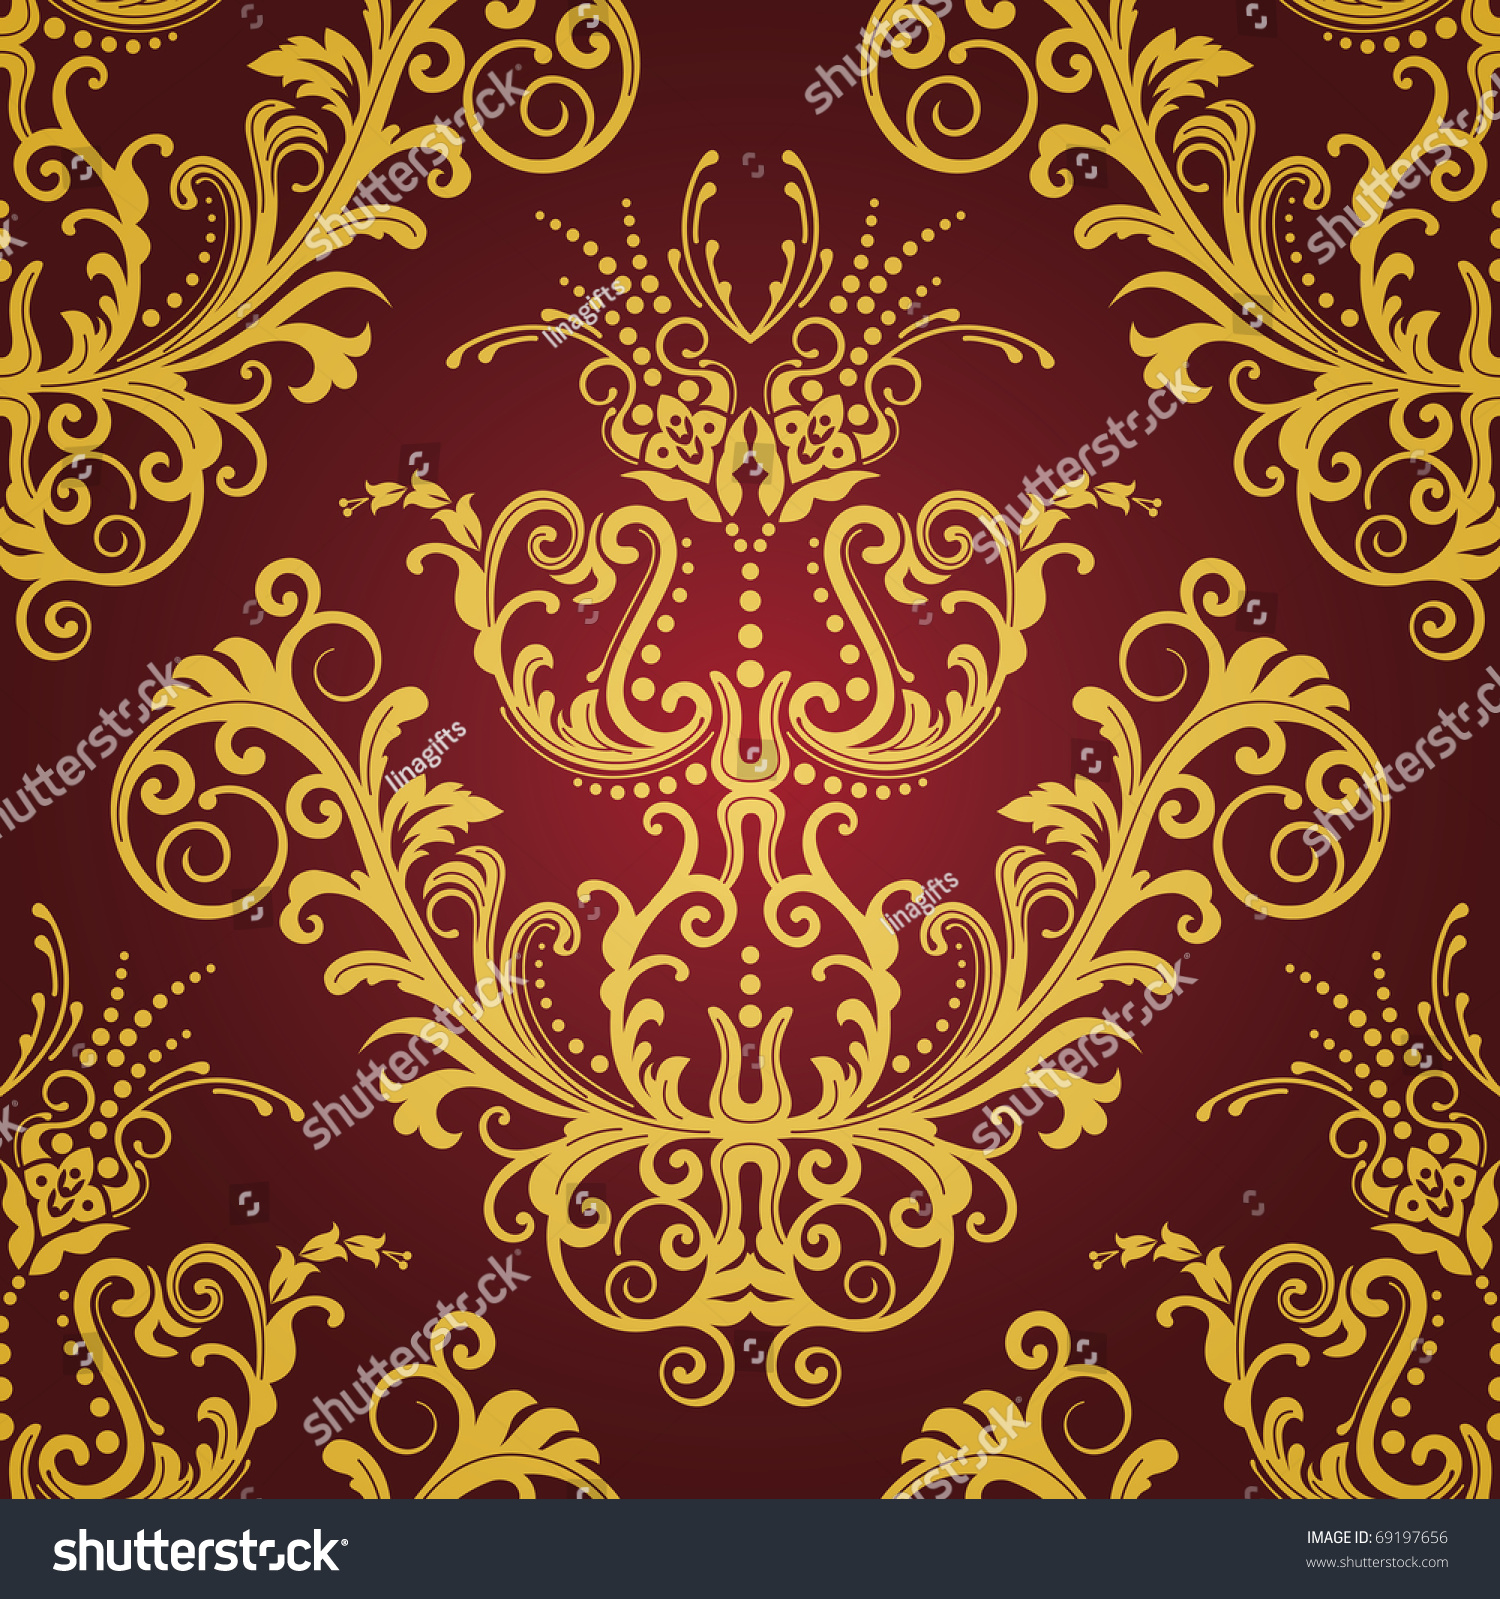 Red And Gold Floral Vintage Seamless Wallpaper This Image Is A Vector Illustration